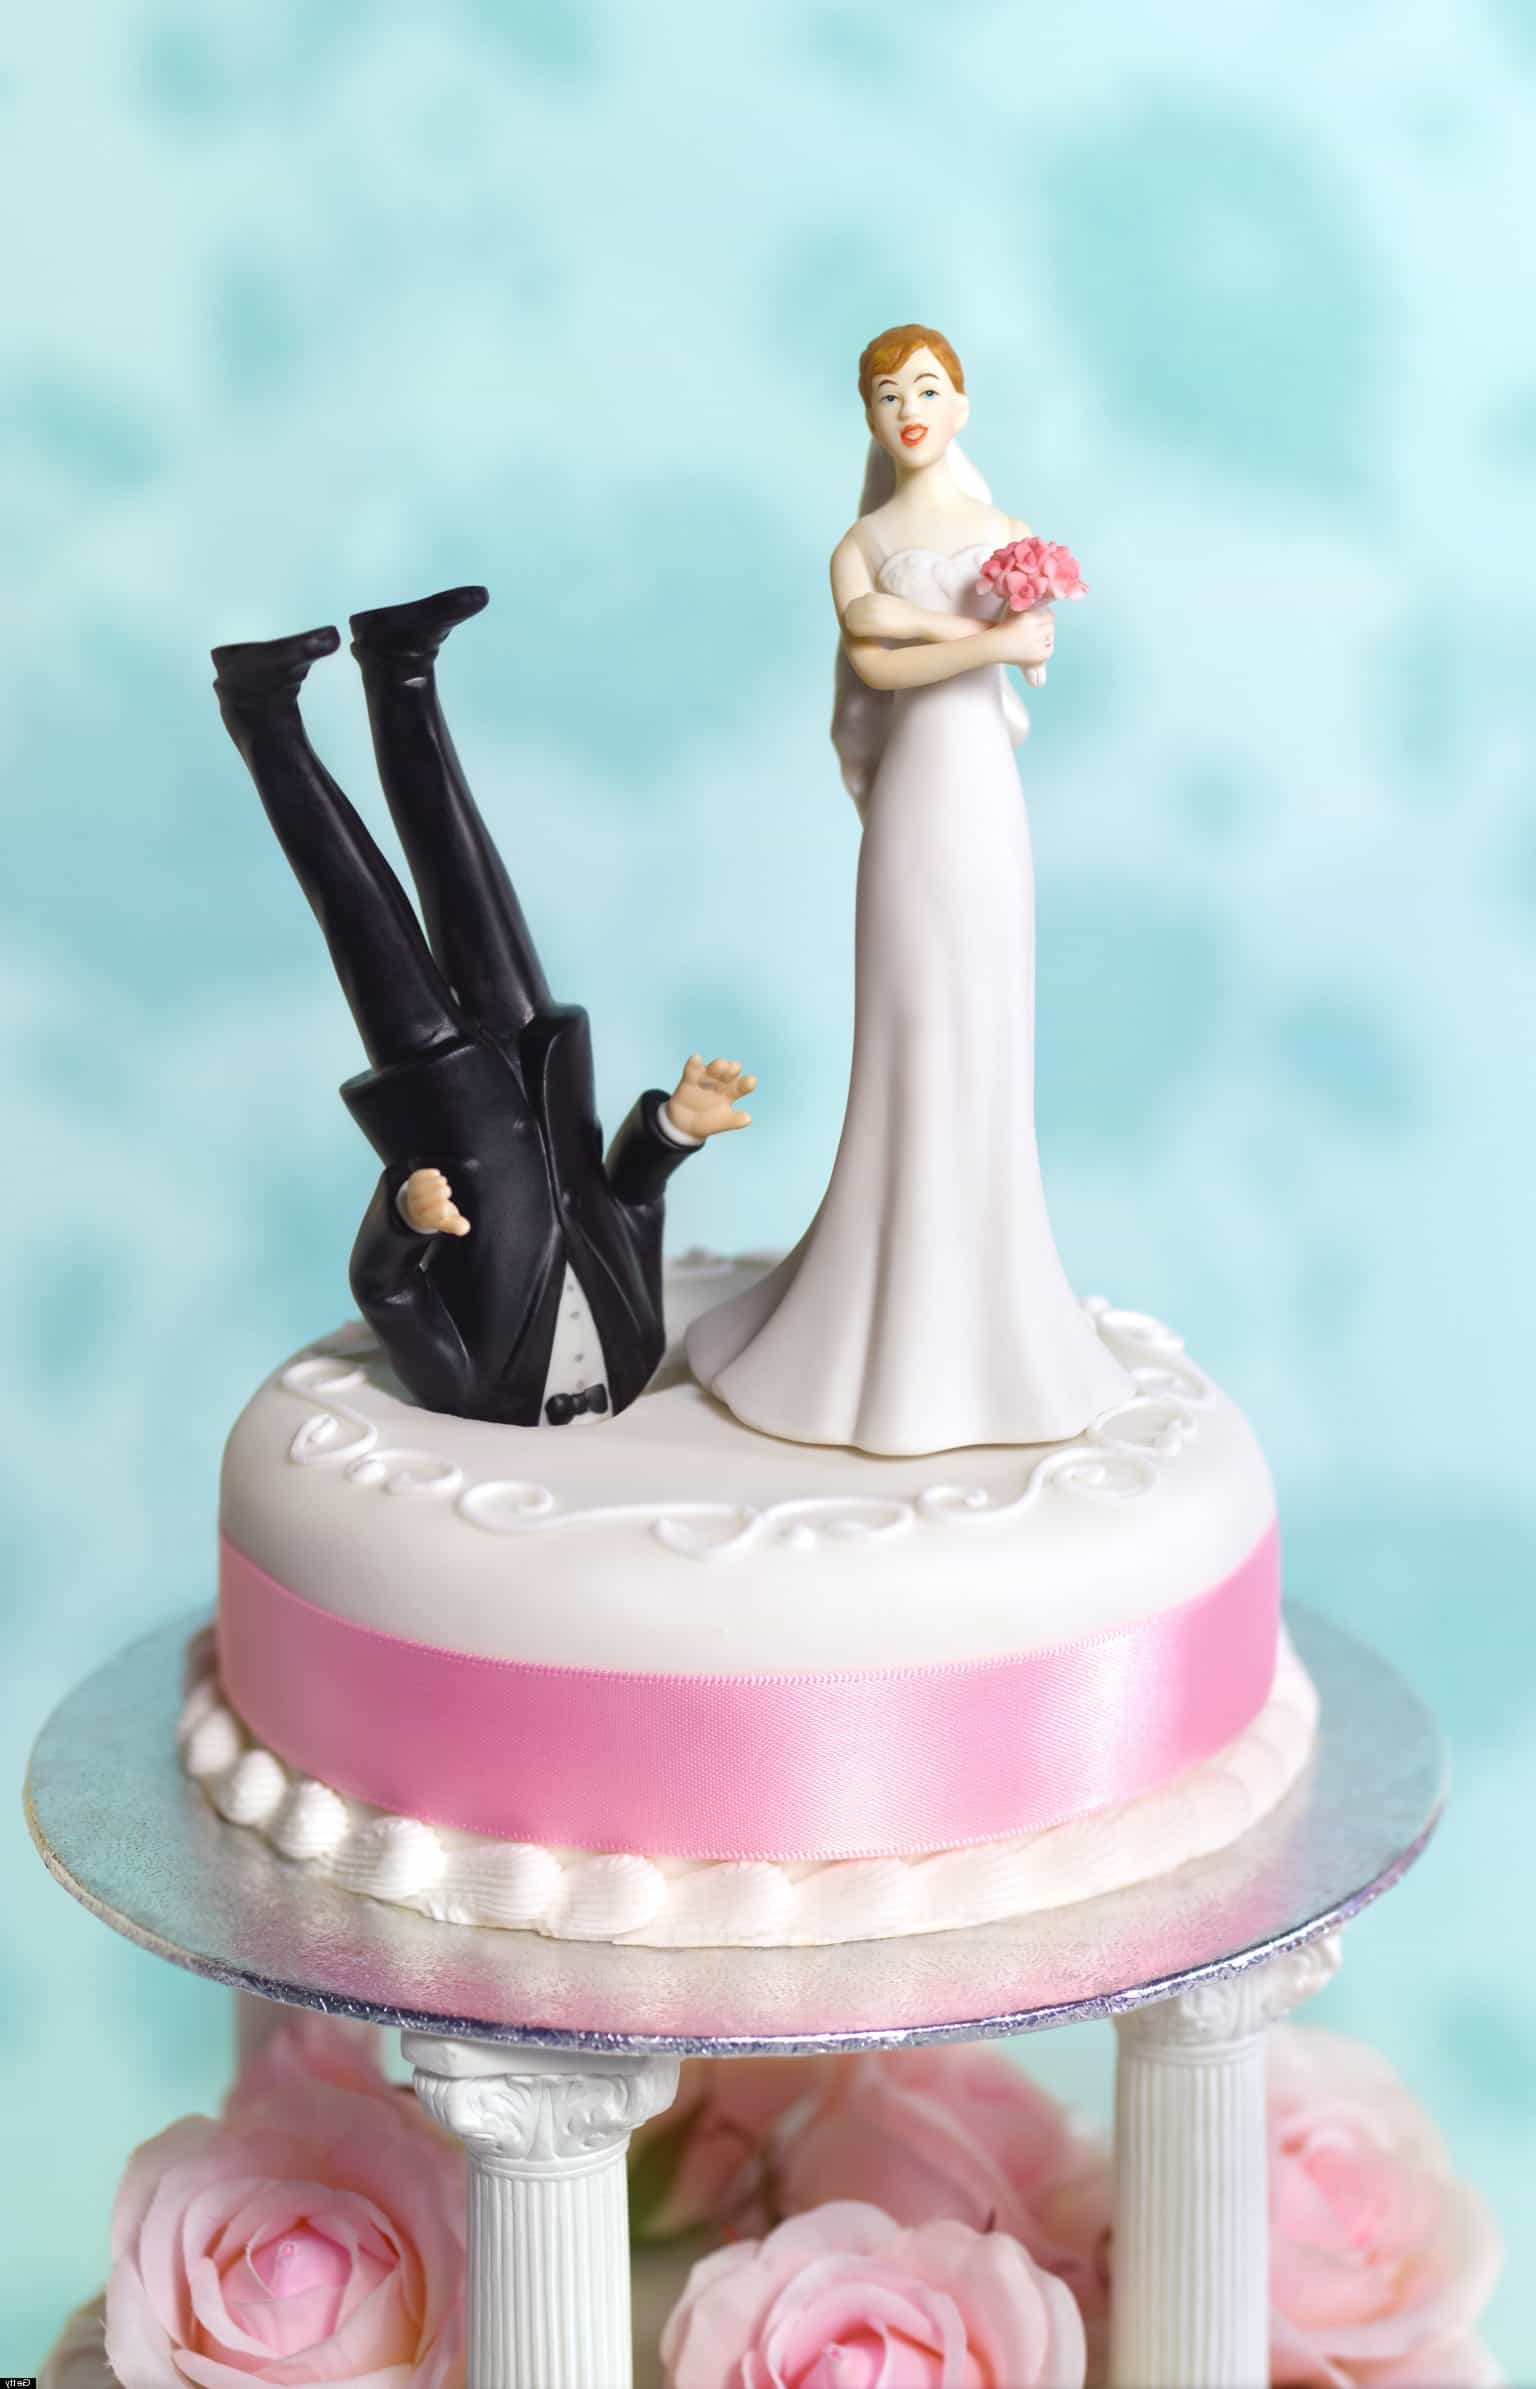 Funny Wedding Cake Topper Gallery 1 of 10